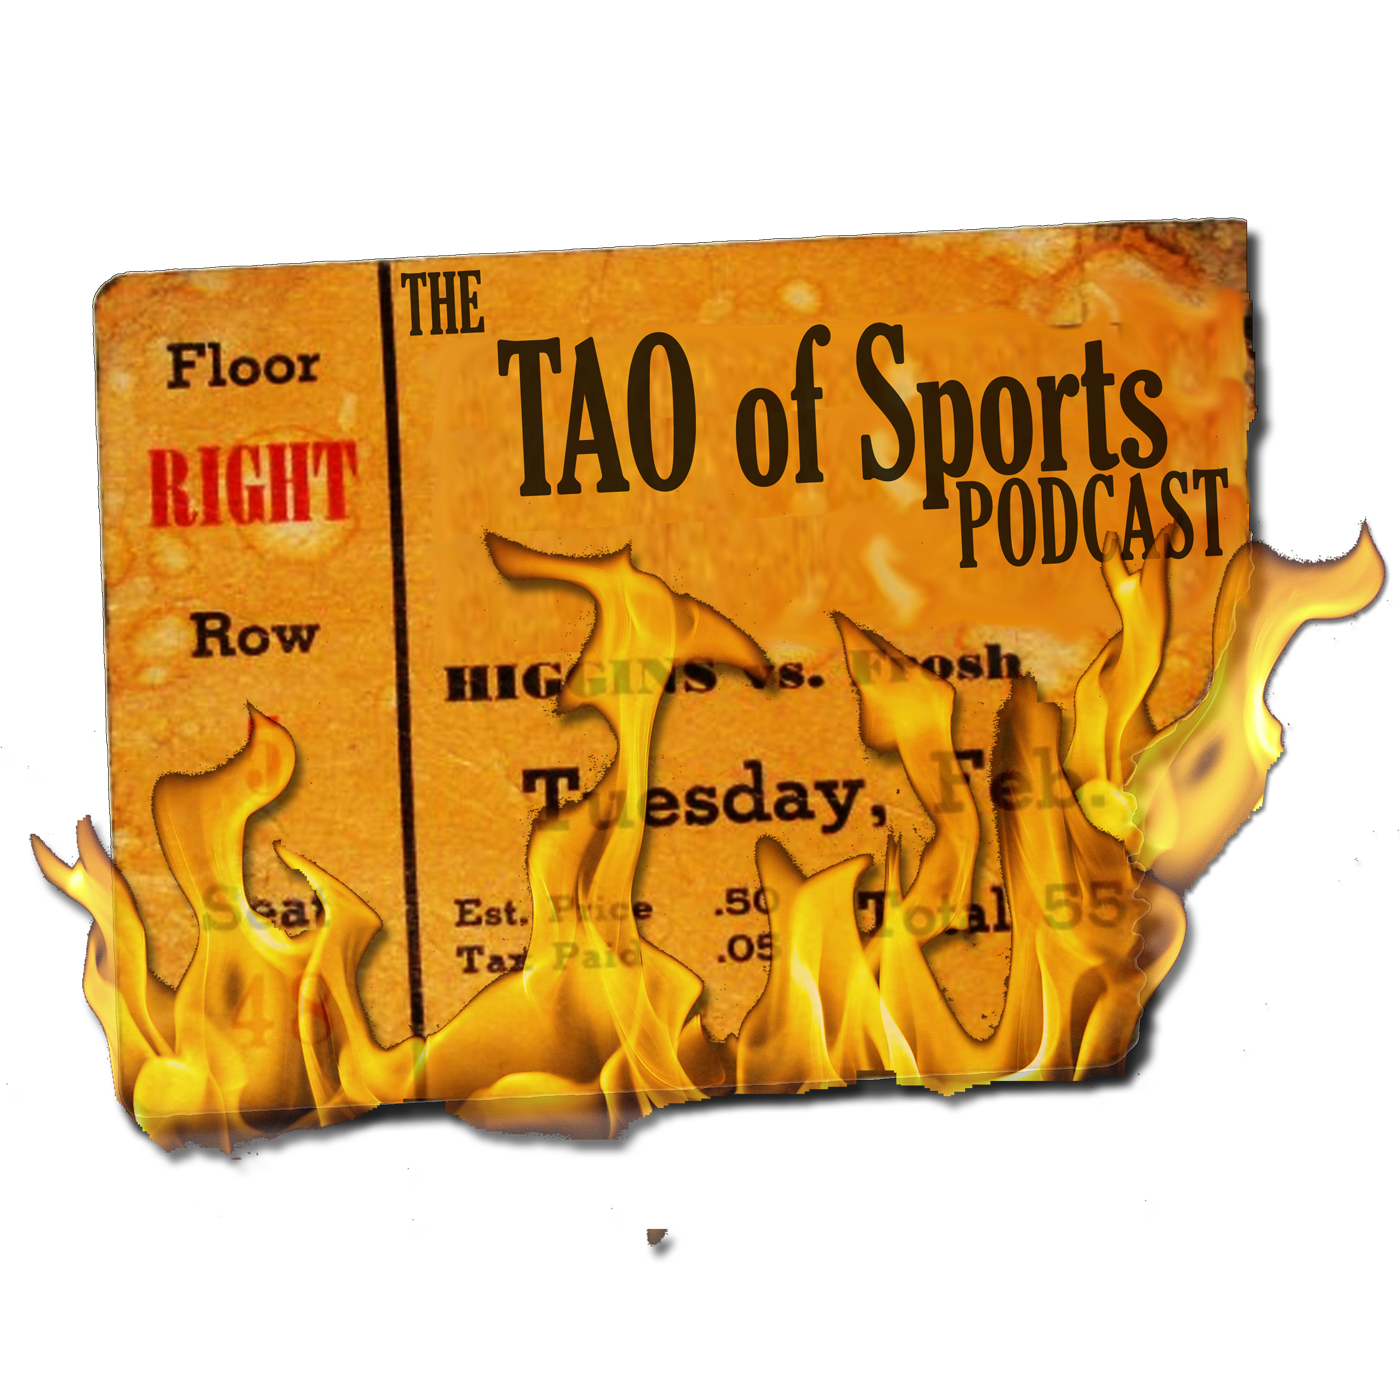 The Tao of Sports Podcast – The Definitive Sports, Marketing, Business Industry News Podcast show image